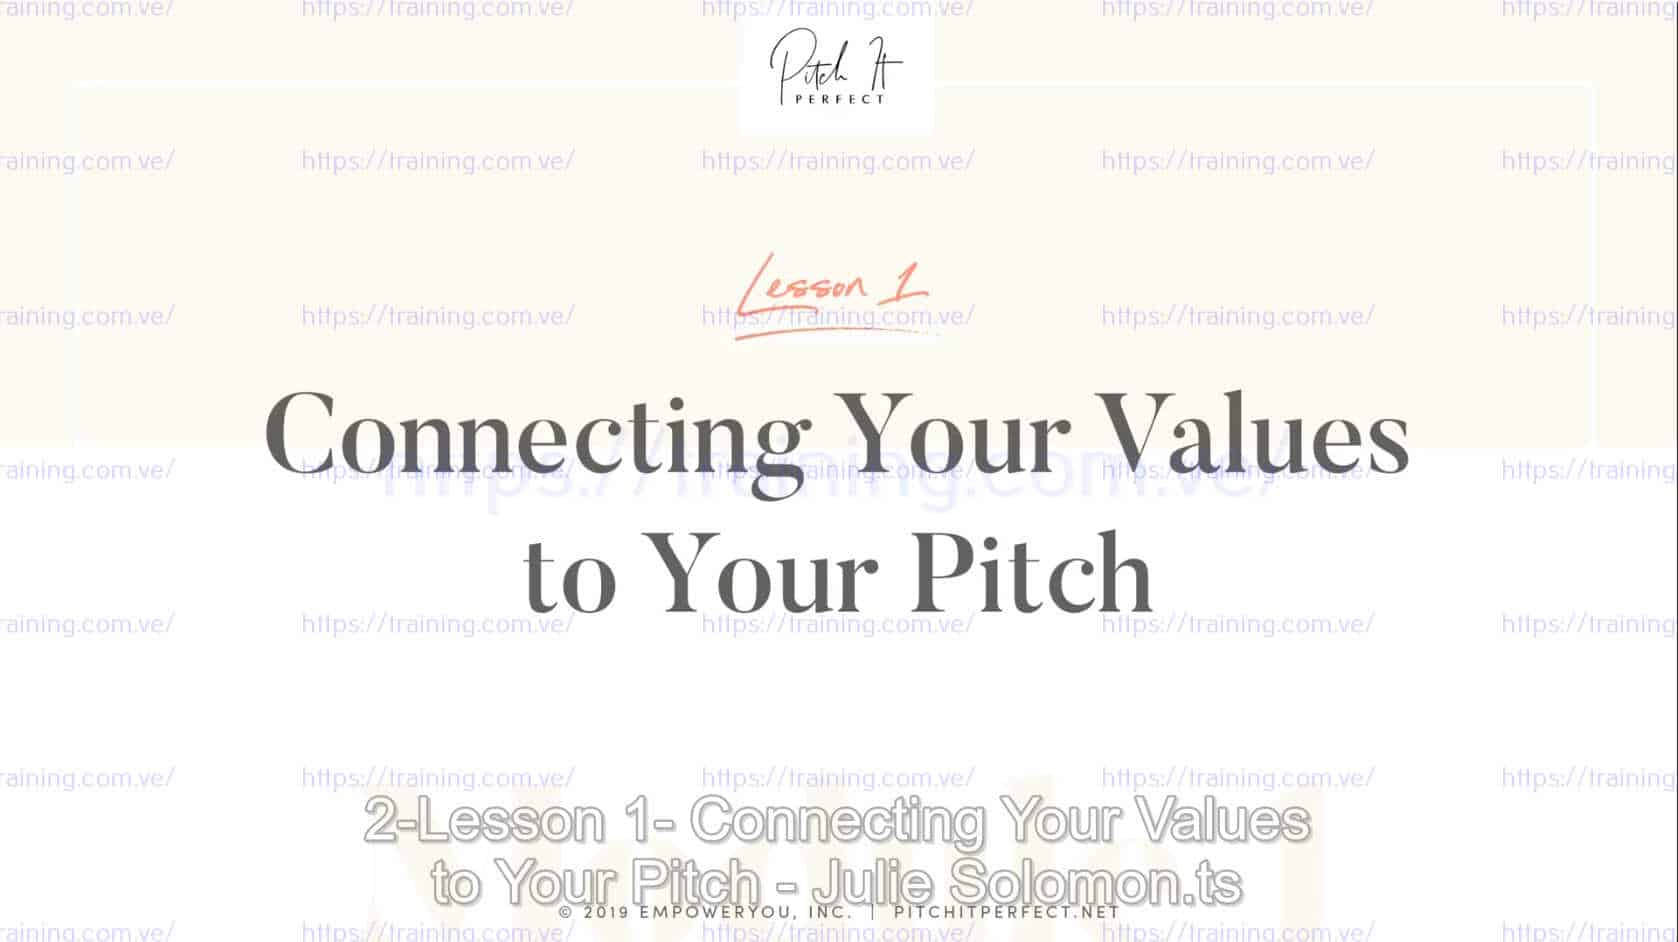 Pitch It Perfect by Julie Solomon Coupon